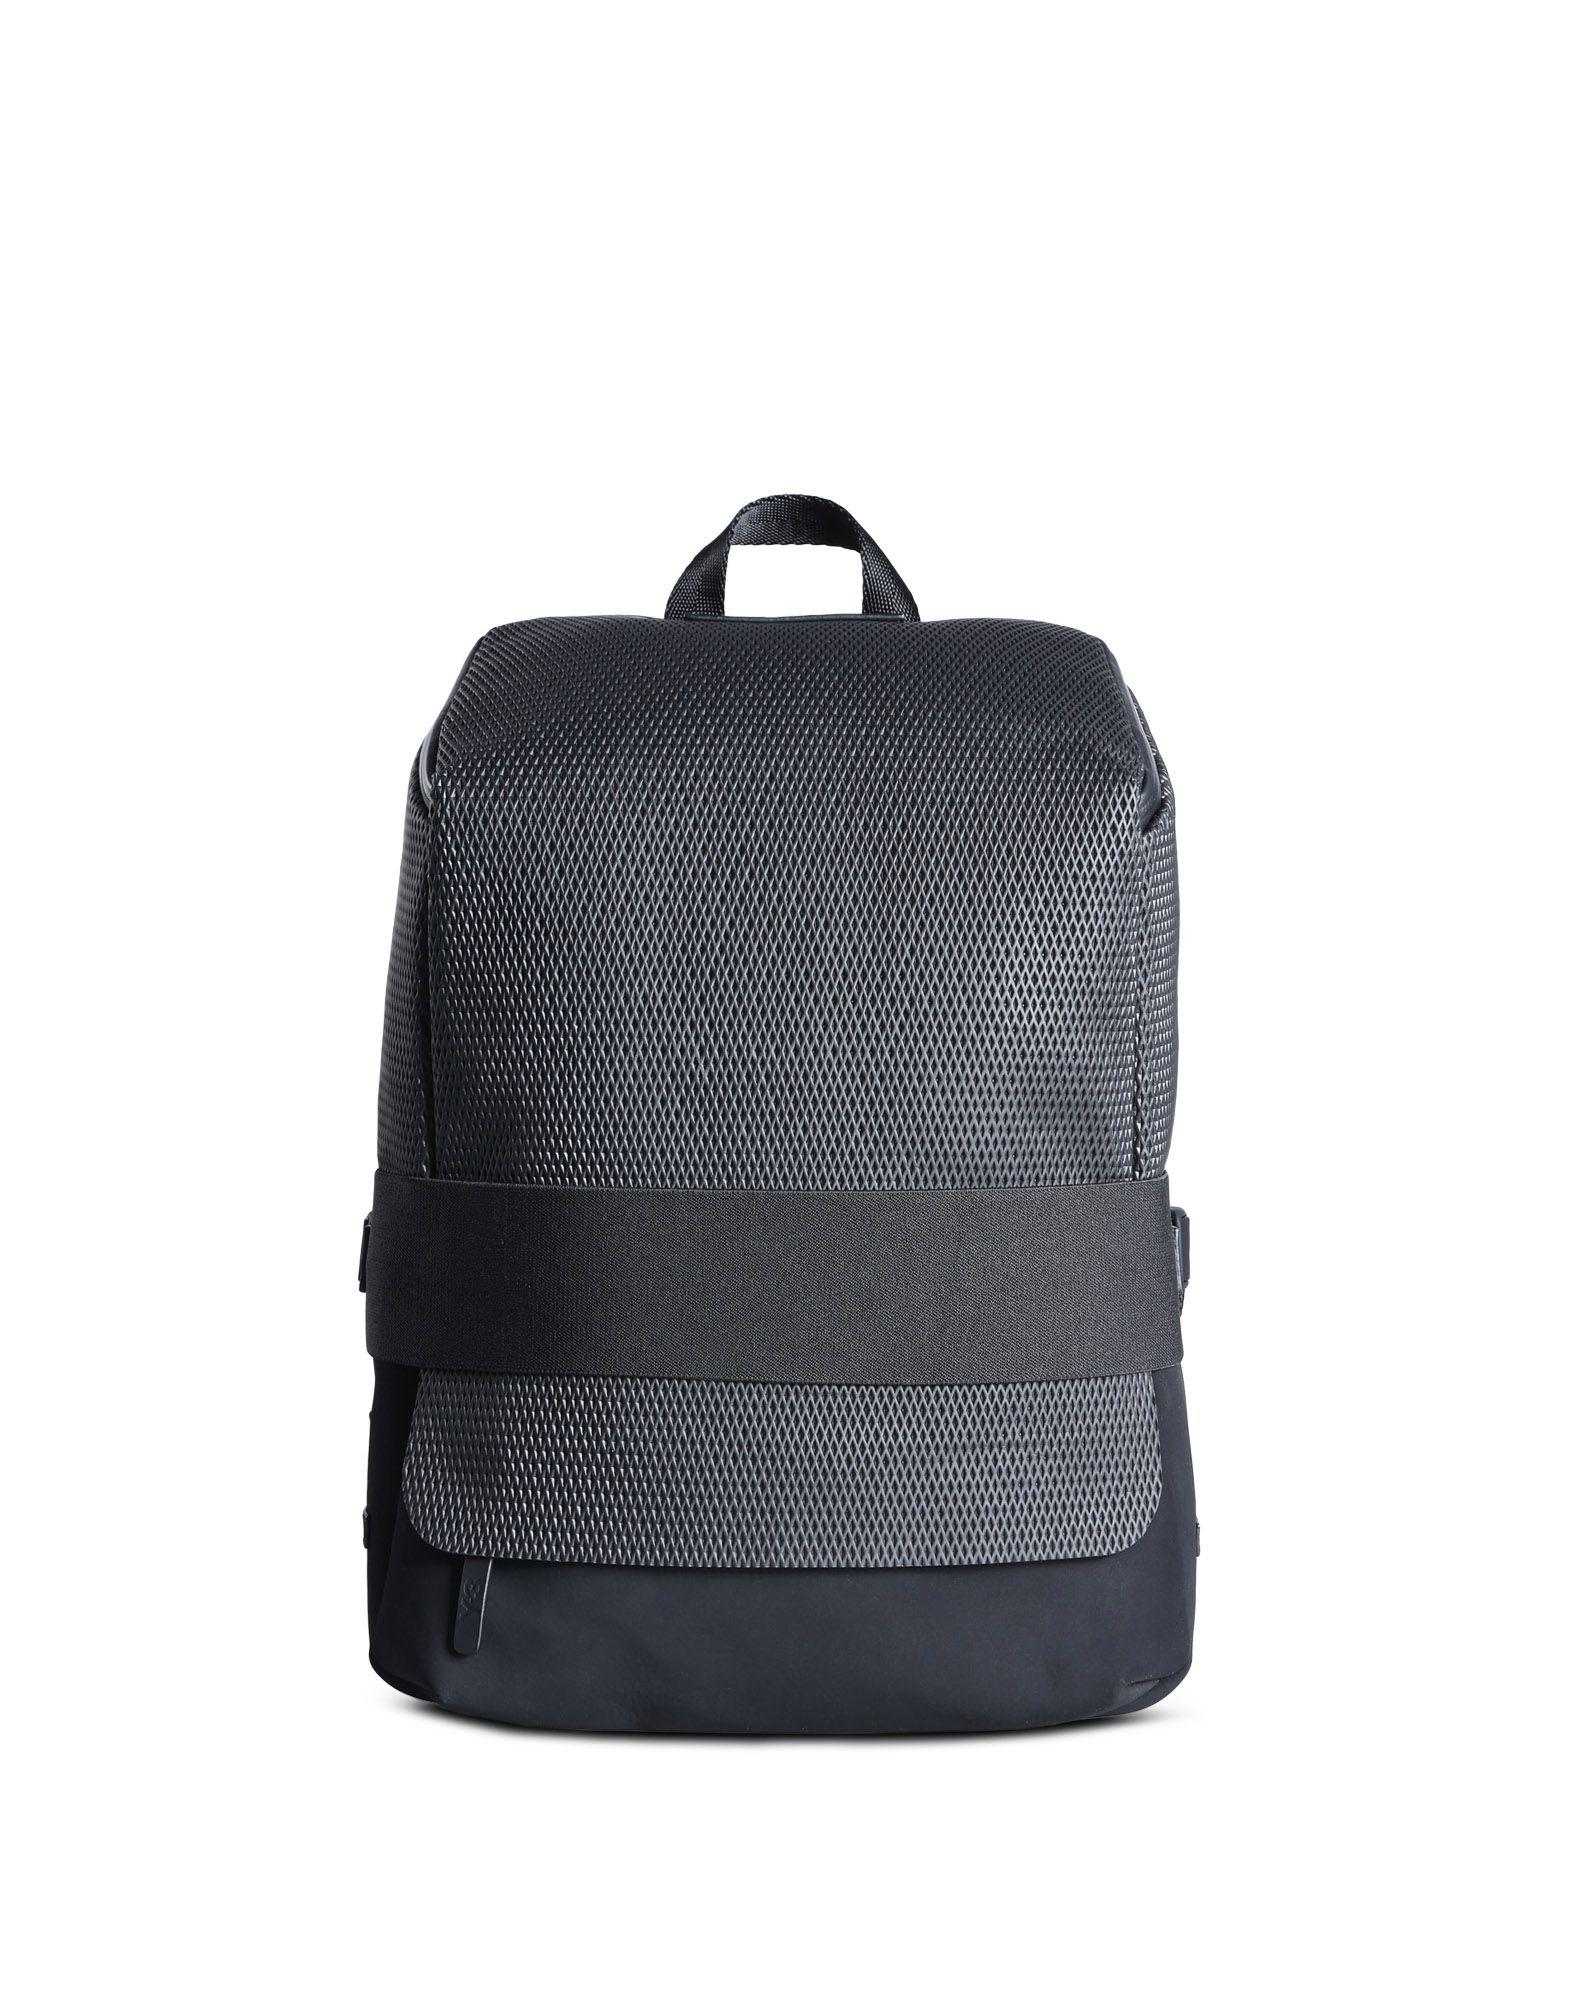 9b3552bcc0 Lyst - Y-3 Qasa Air Backpack in Black